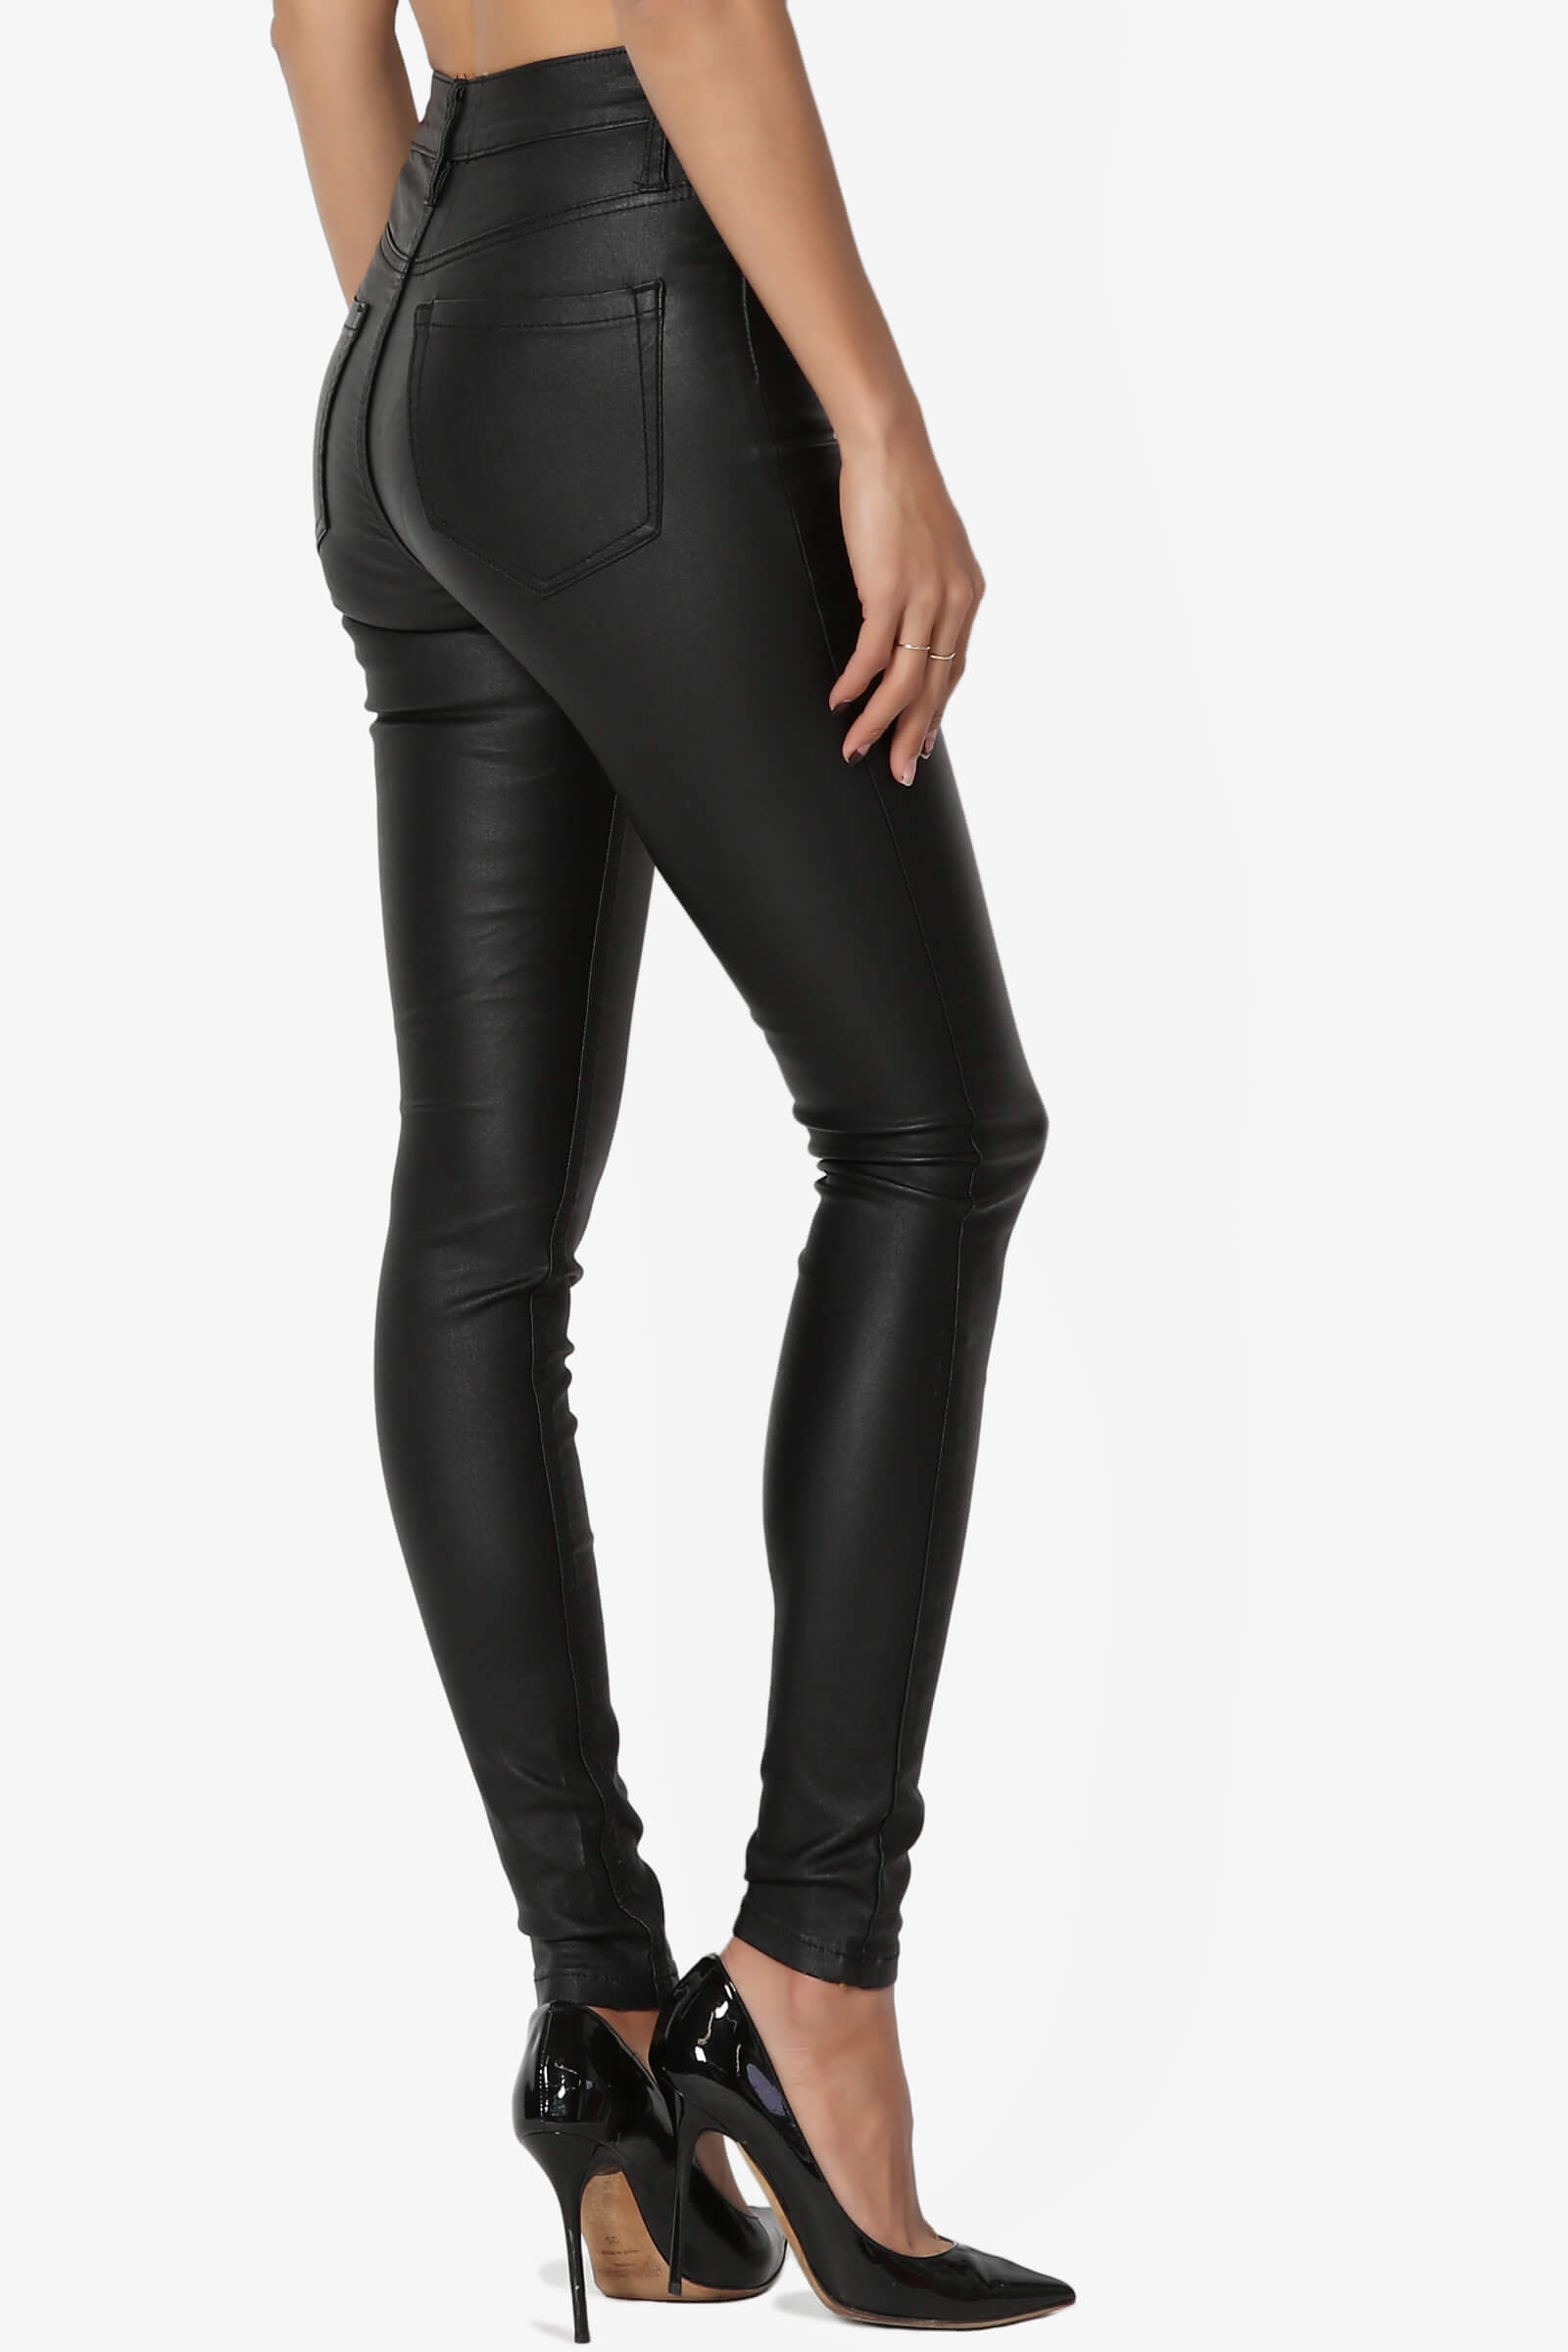 d2d25eb93cf4ec Details about TheMogan Faux Leather High Waisted Skinny Pants Biker Wet  Shiny Look Trouser